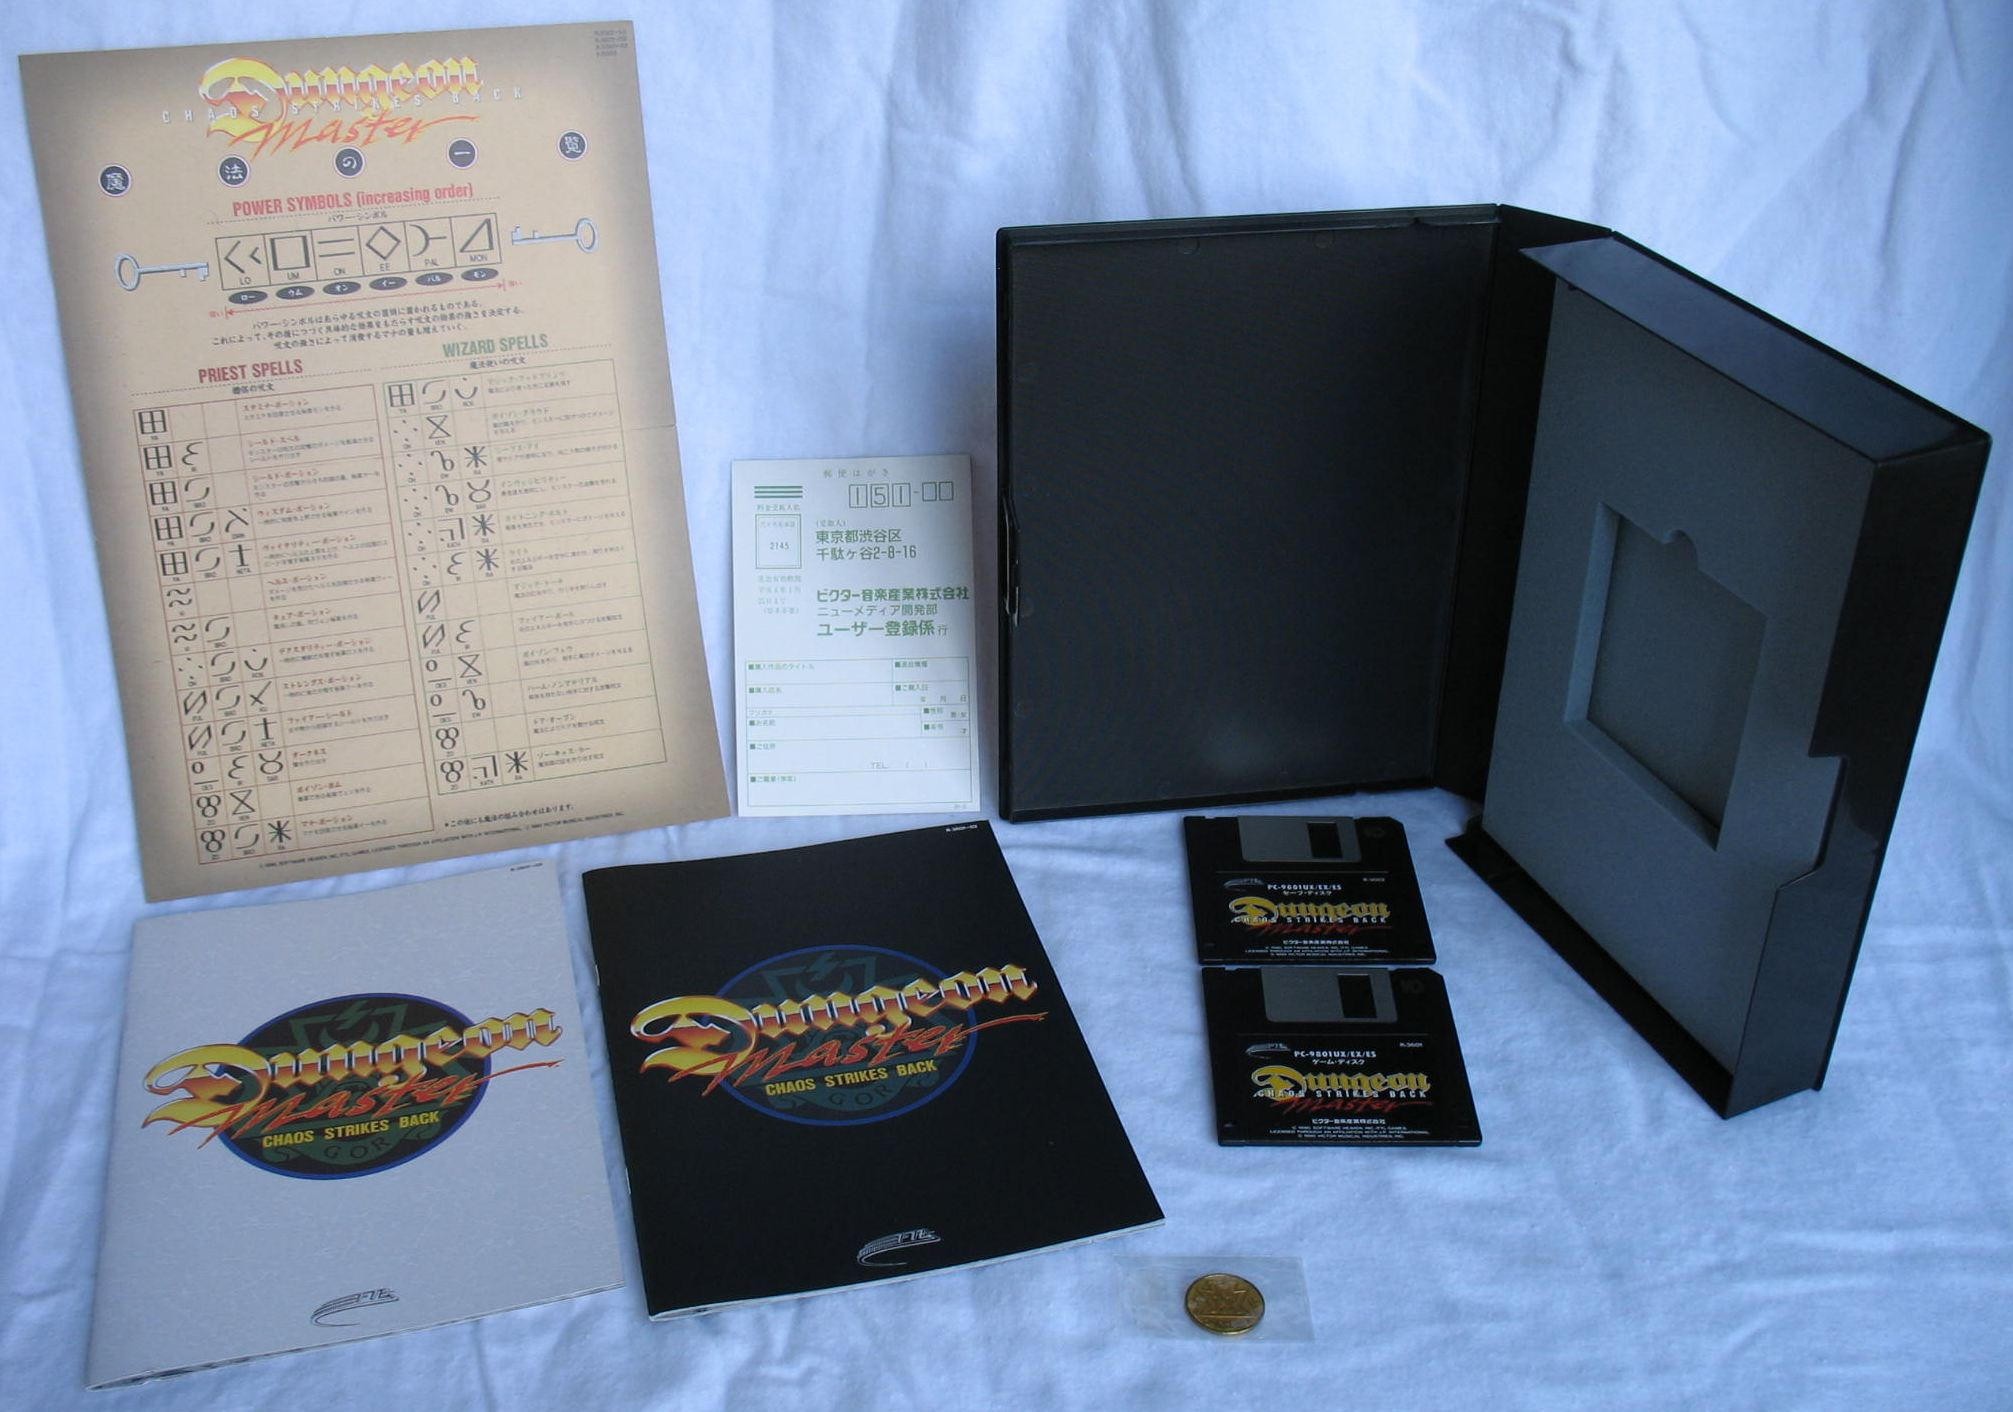 Game - Chaos Strikes Back - JP - PC-9801 - 3.5-inch - All - Overview - Photo